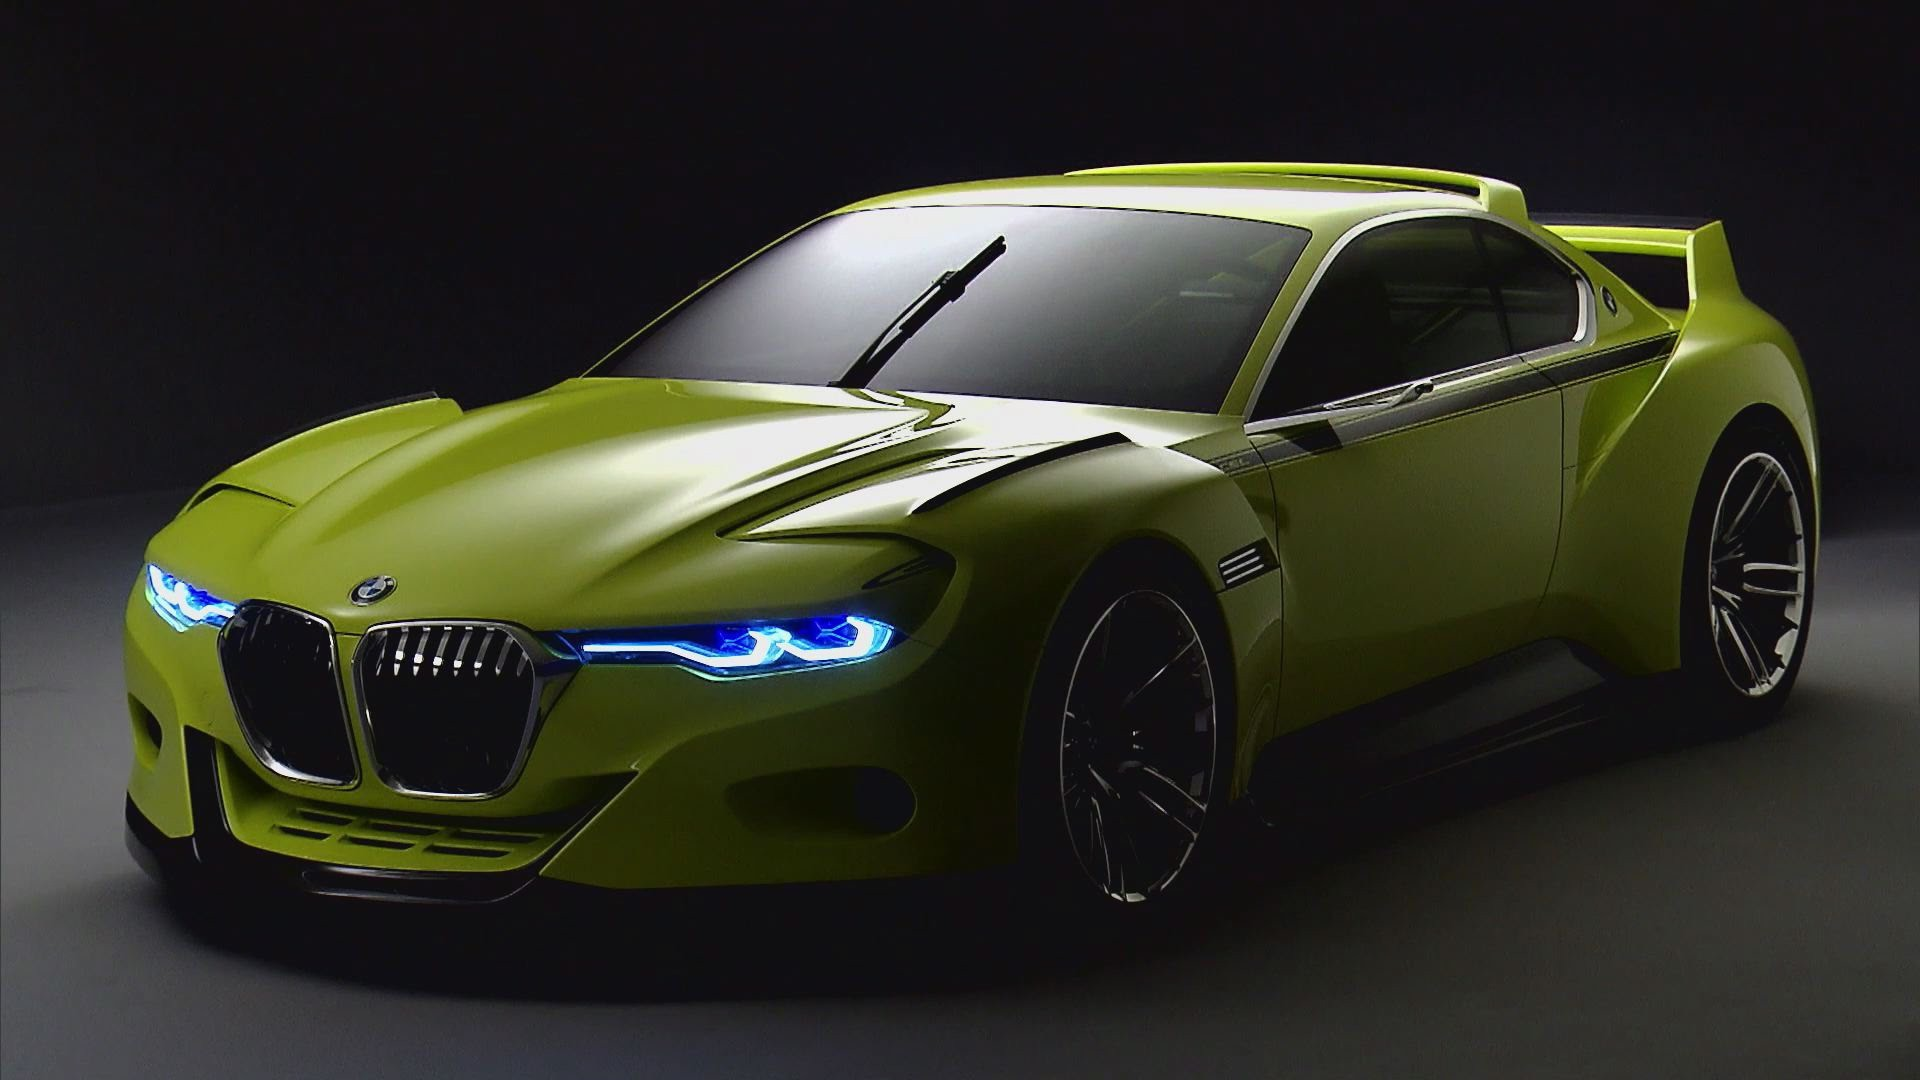 Bmw 3 0 Csl >> BMW 3.0 CSL Hommage Concept Wallpapers Images Photos ...